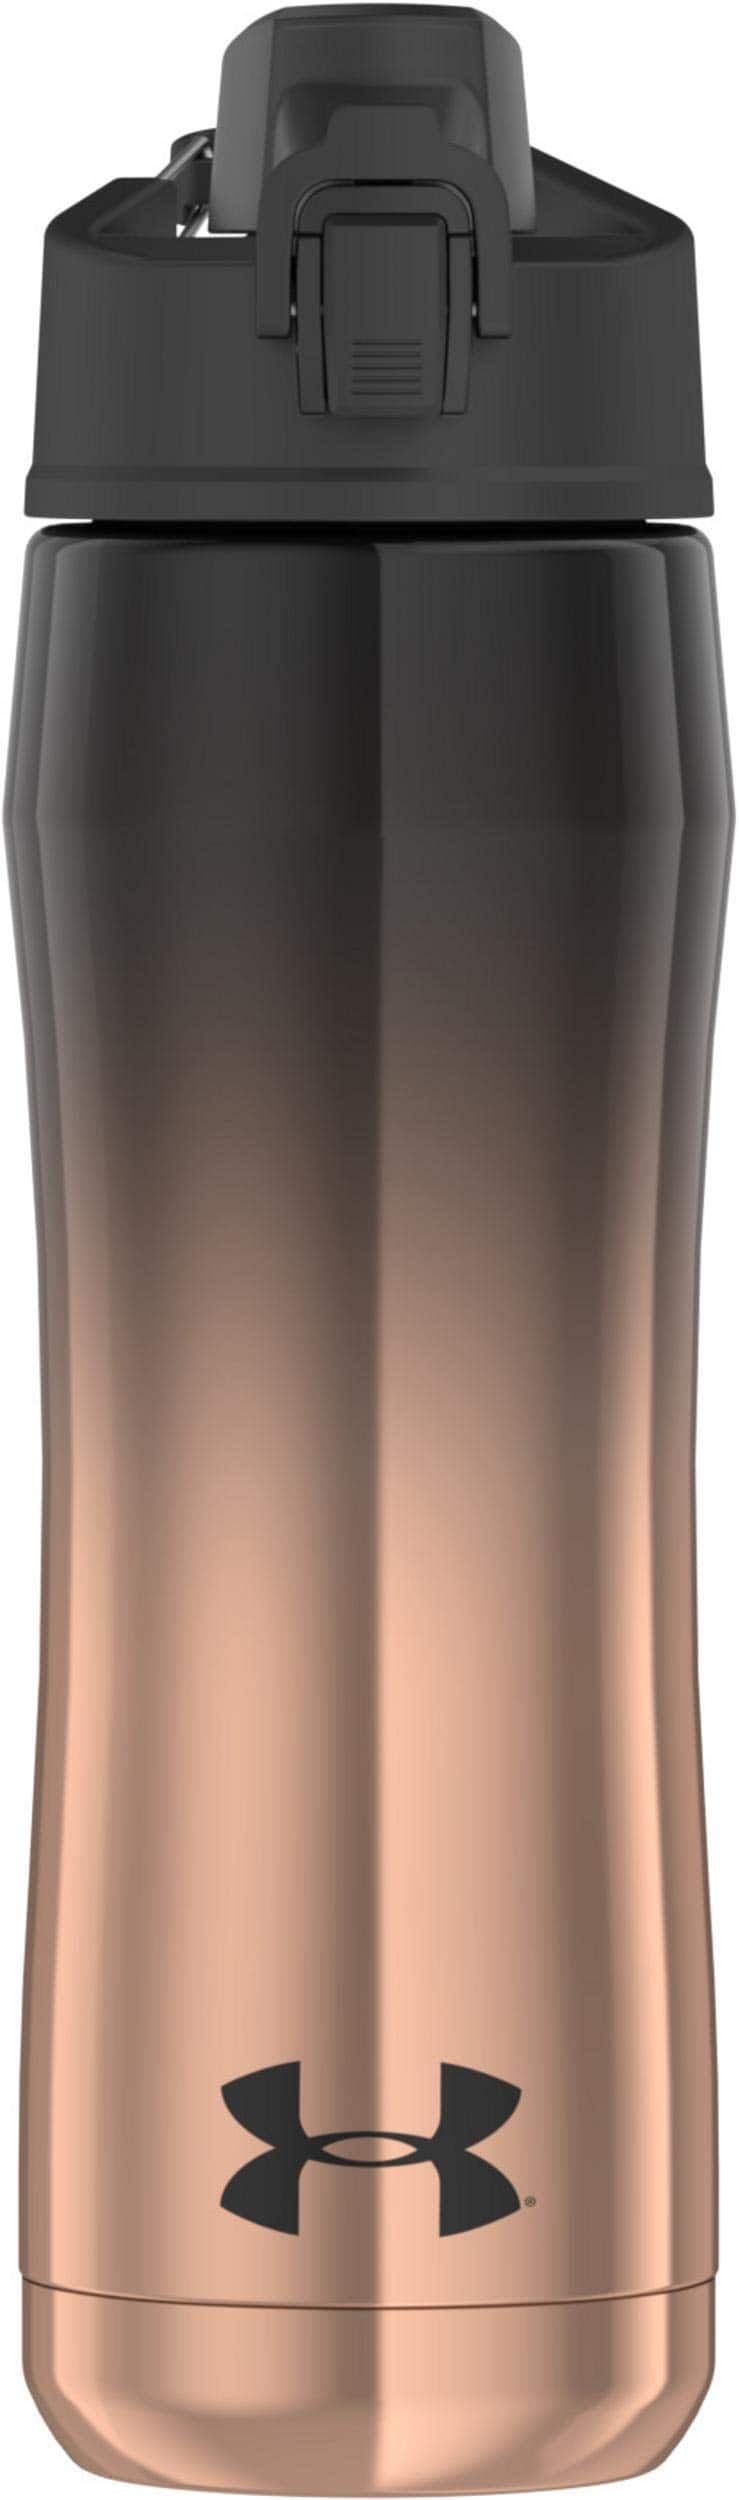 Under Armour Chrome 18 Ounce Stainless Steel Water Bottle $4.99